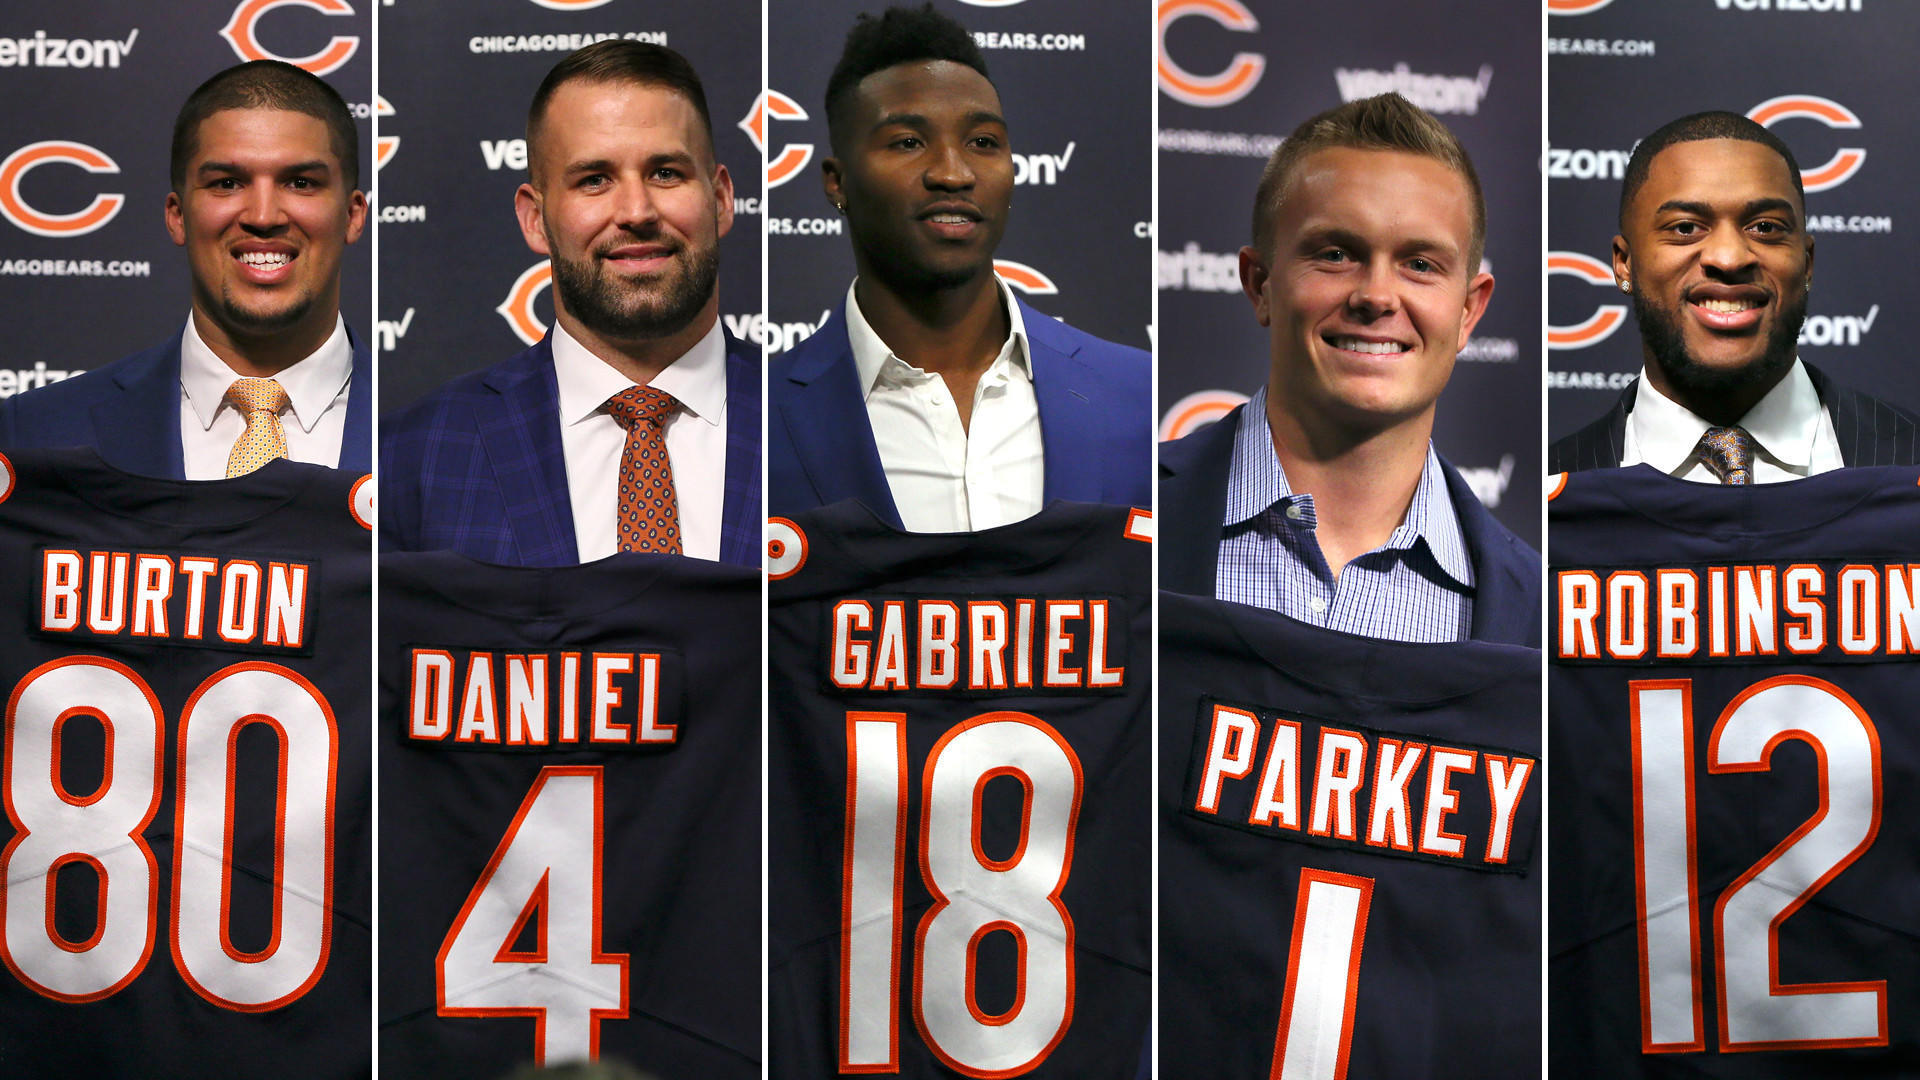 Ct-spt-bears-free-agents-potential-20180315